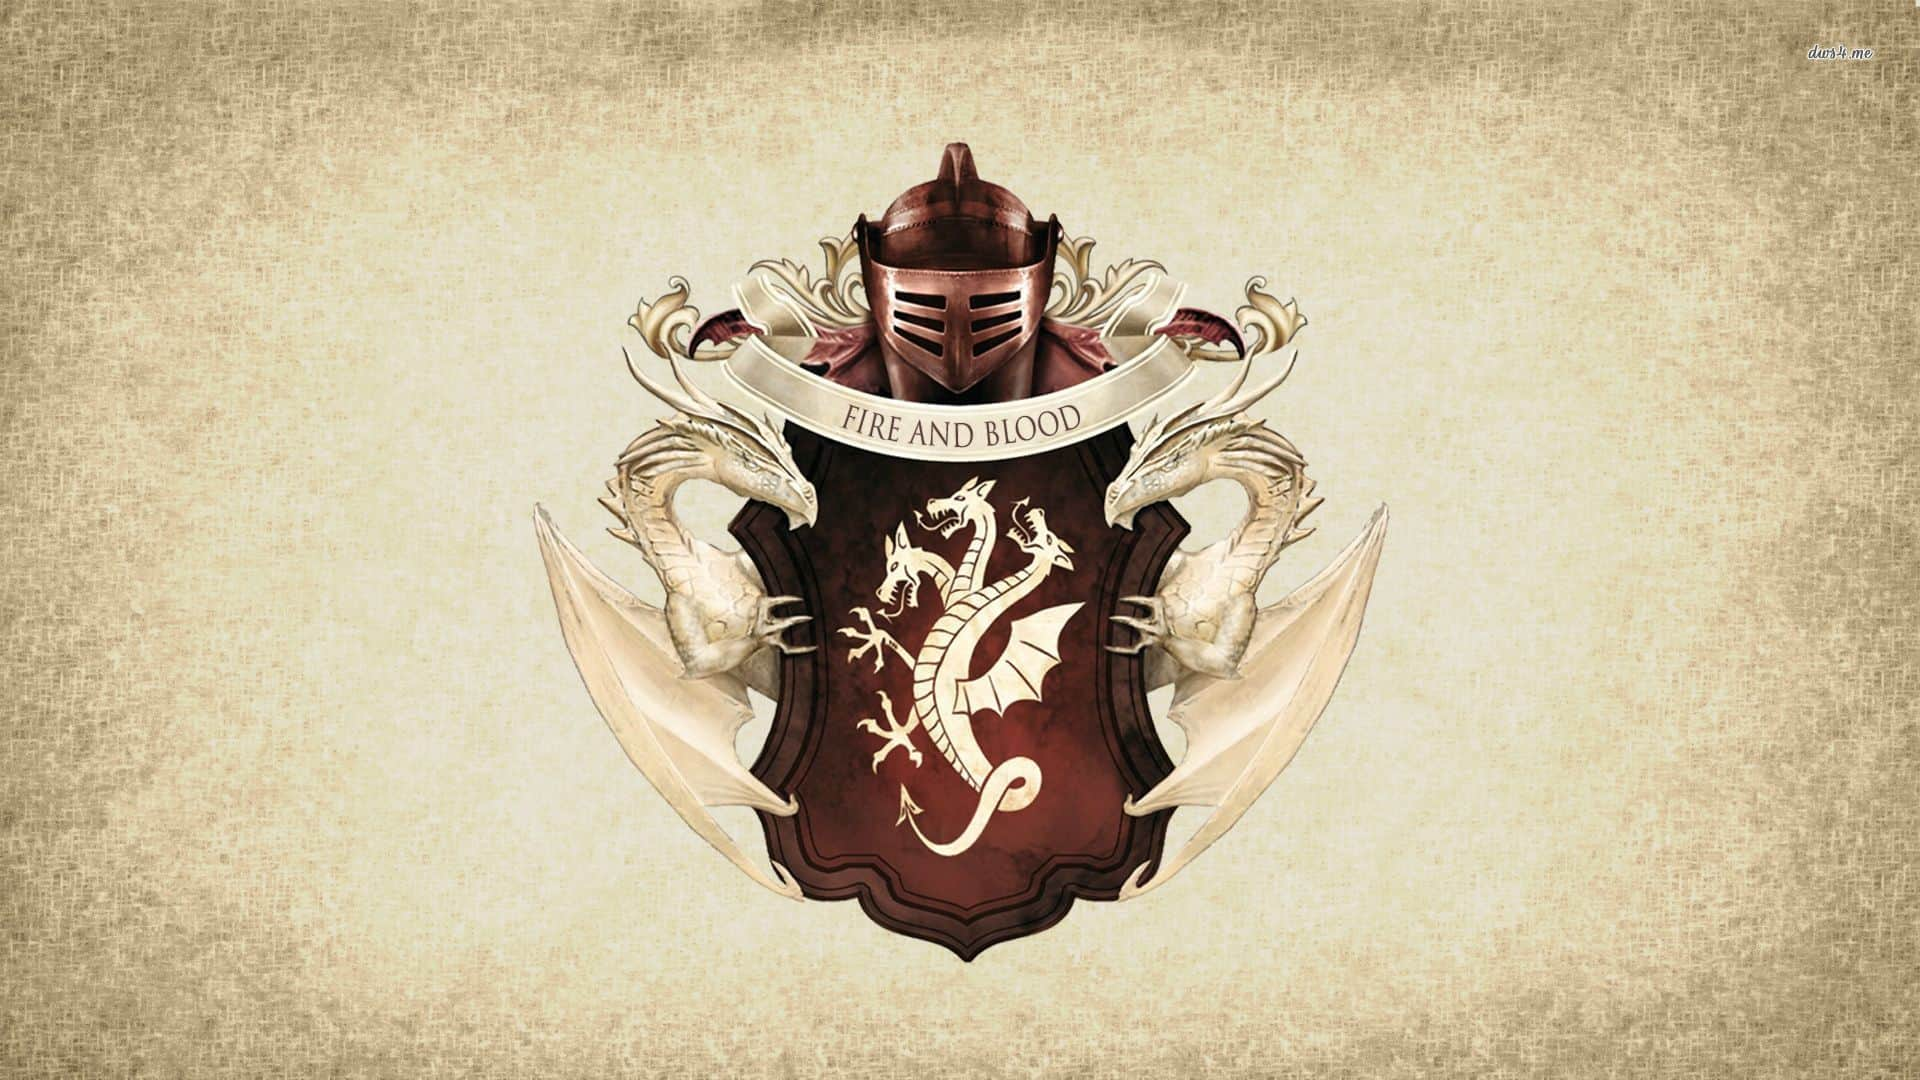 The Full Game of Thrones Family Crest Line-Up